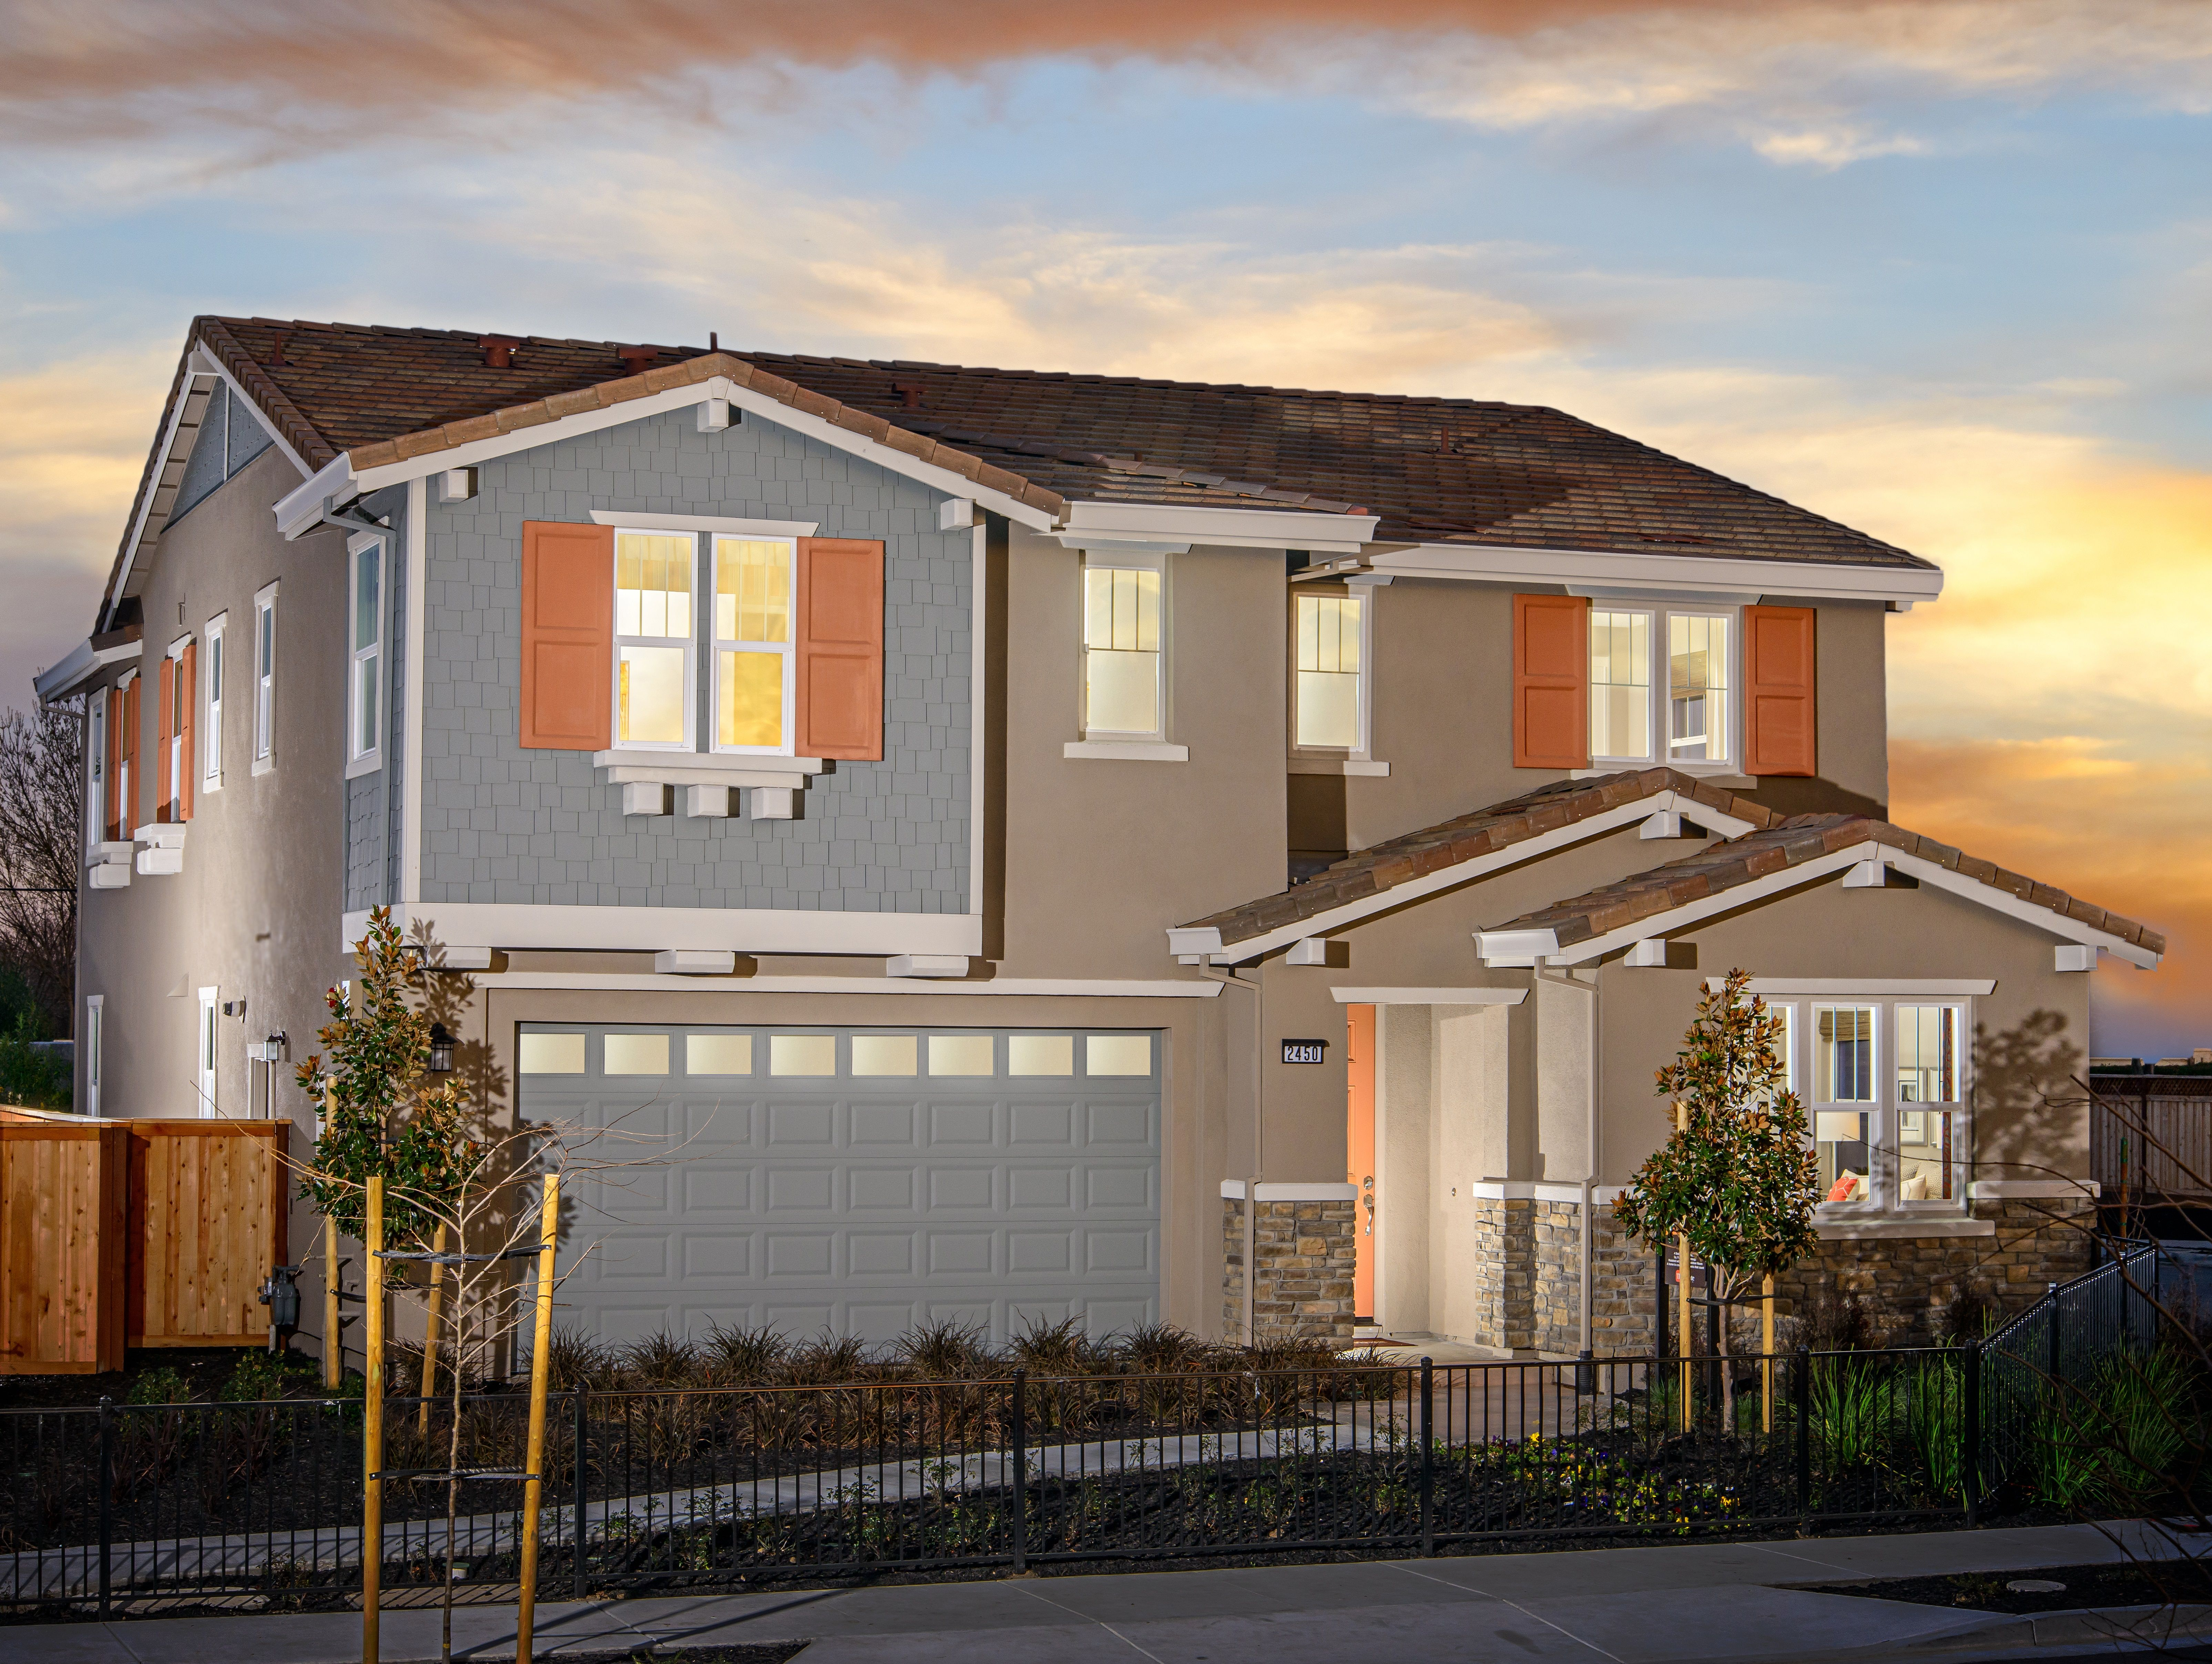 Single Family for Sale at Ventana - Residence 6 2350 Bentley Lane Tracy, California 95376 United States